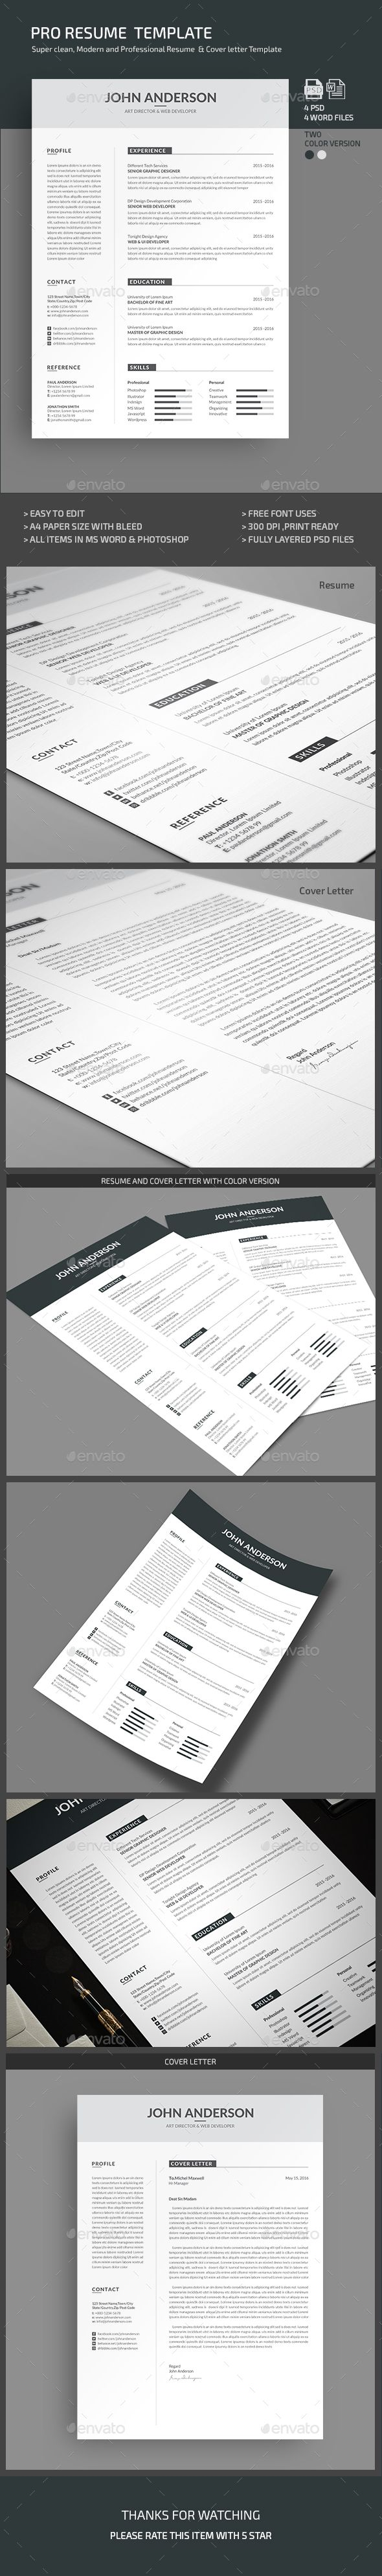 273 Best Resume Design Images On Pinterest Resume Templates Cv